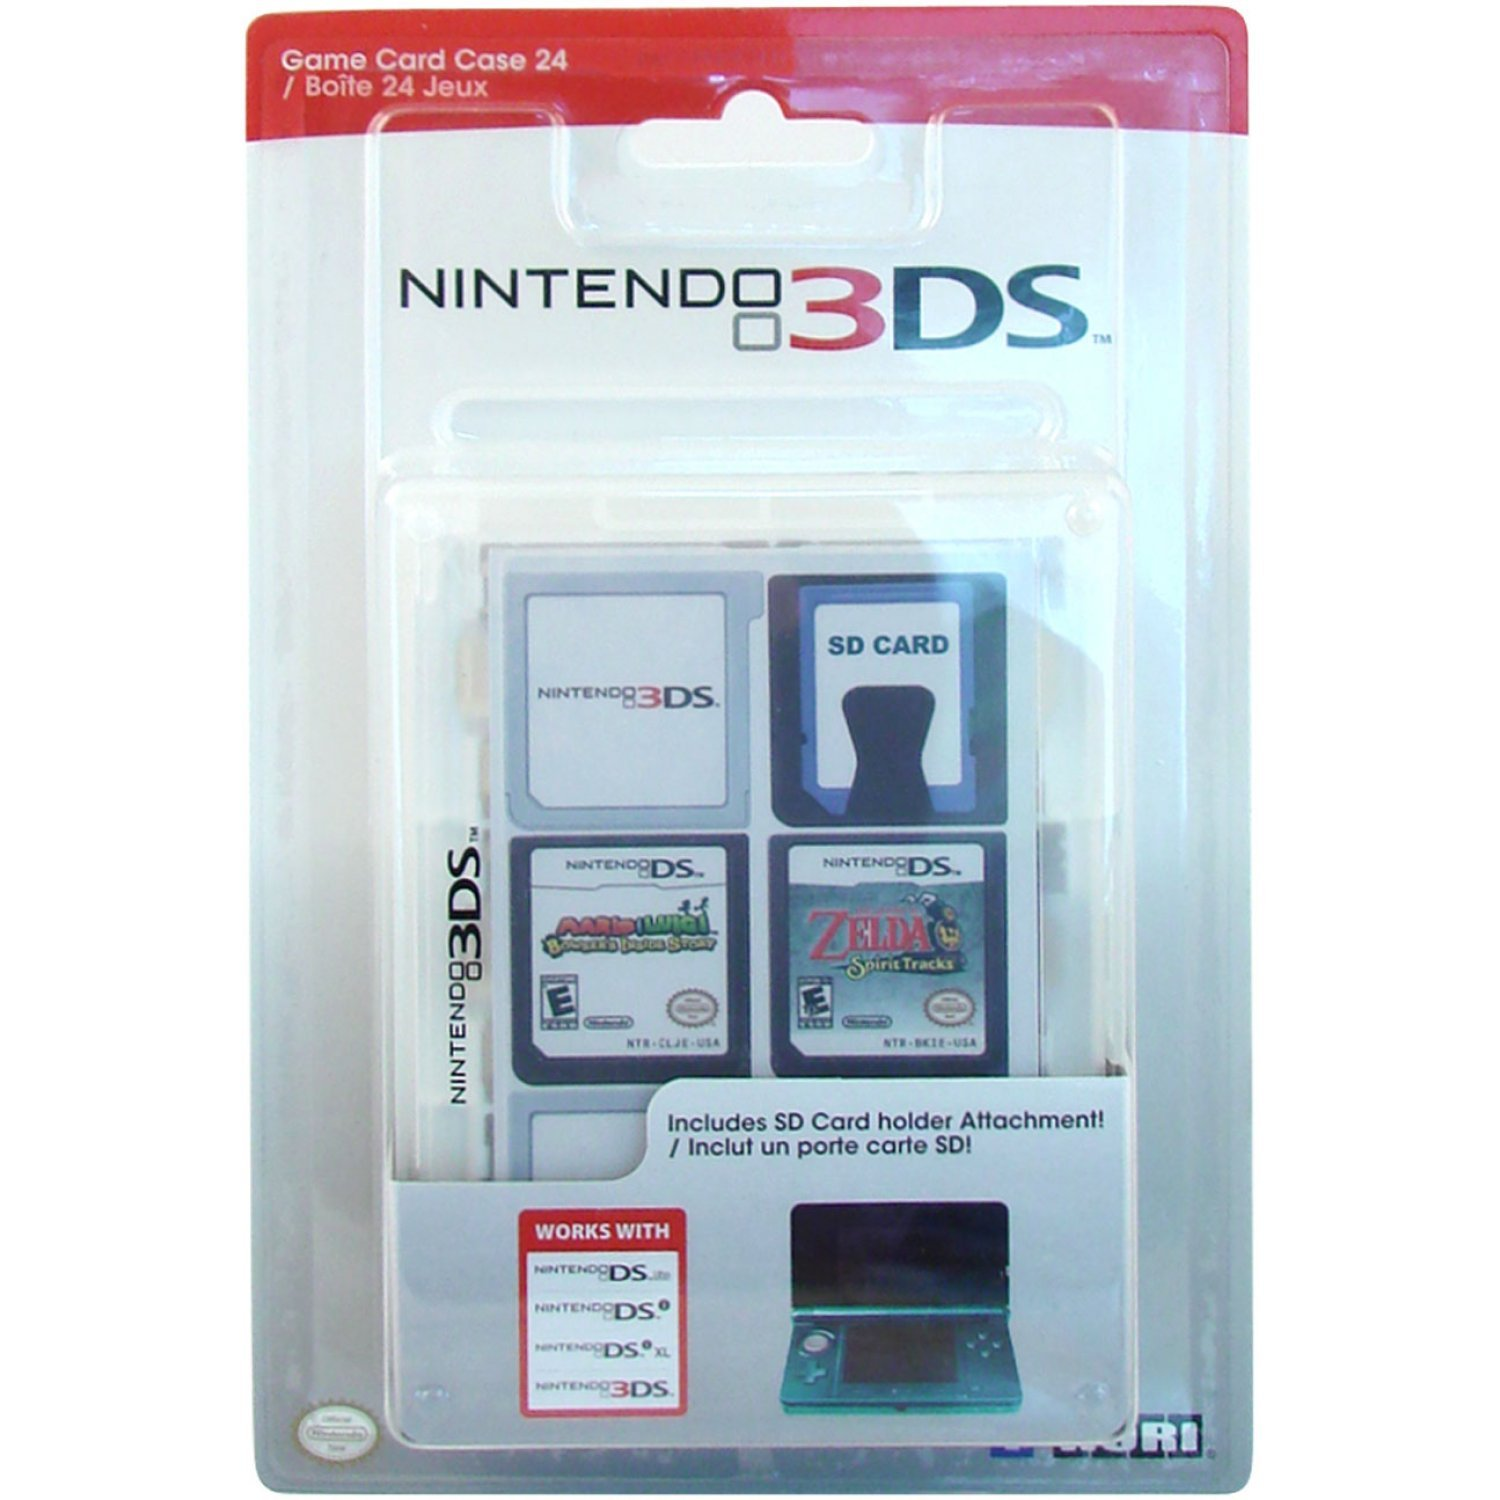 Nintendo 3ds Game Card Case 24 Clear